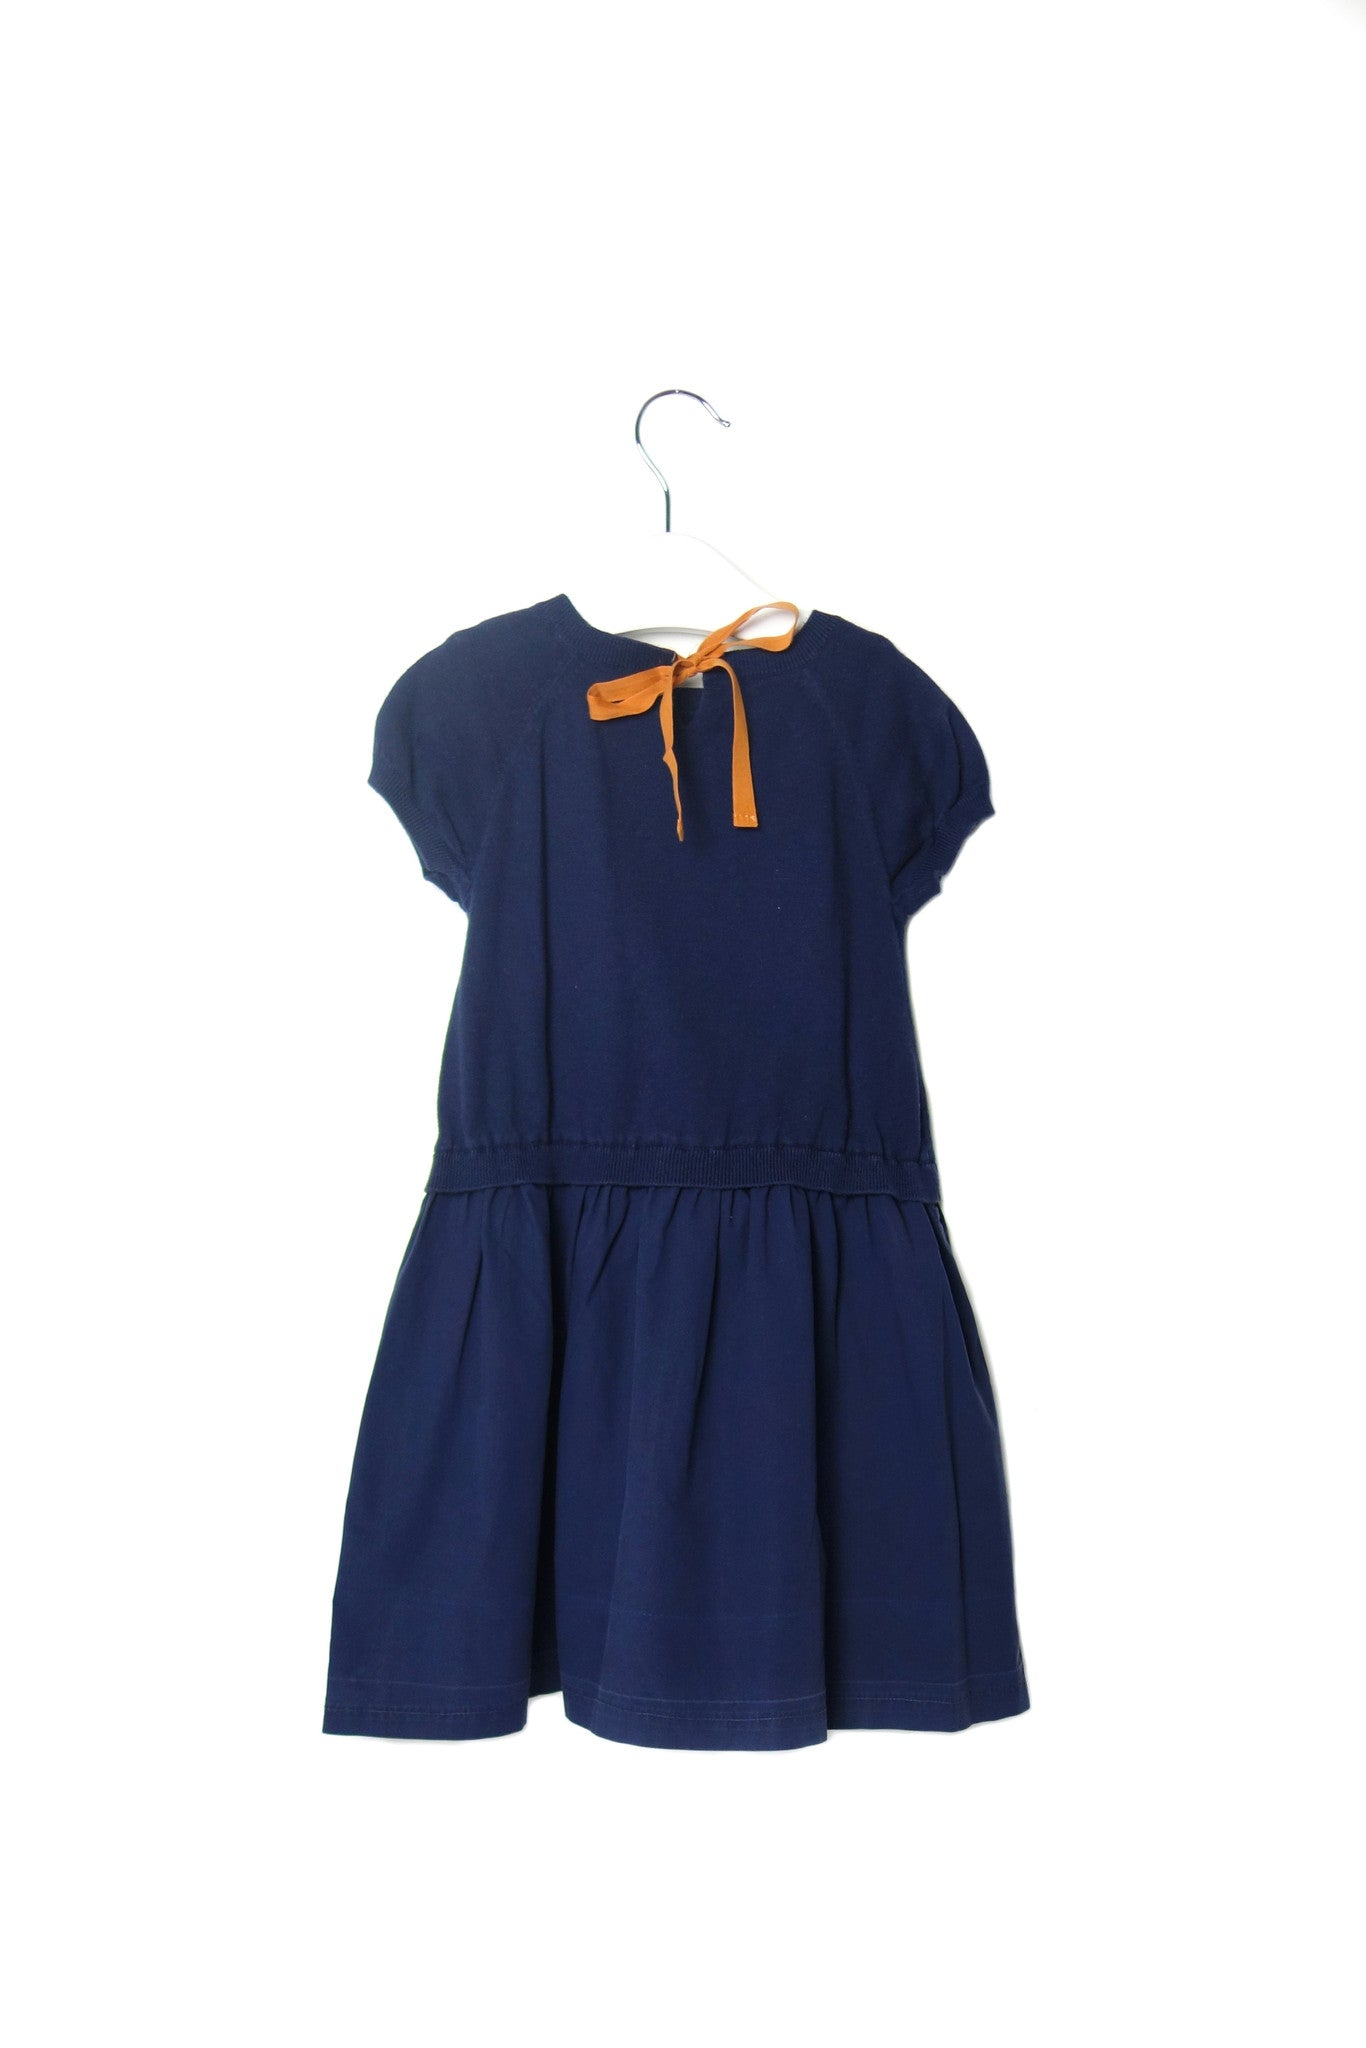 10001922 Bonpoint Kids~Dress 4T at Retykle